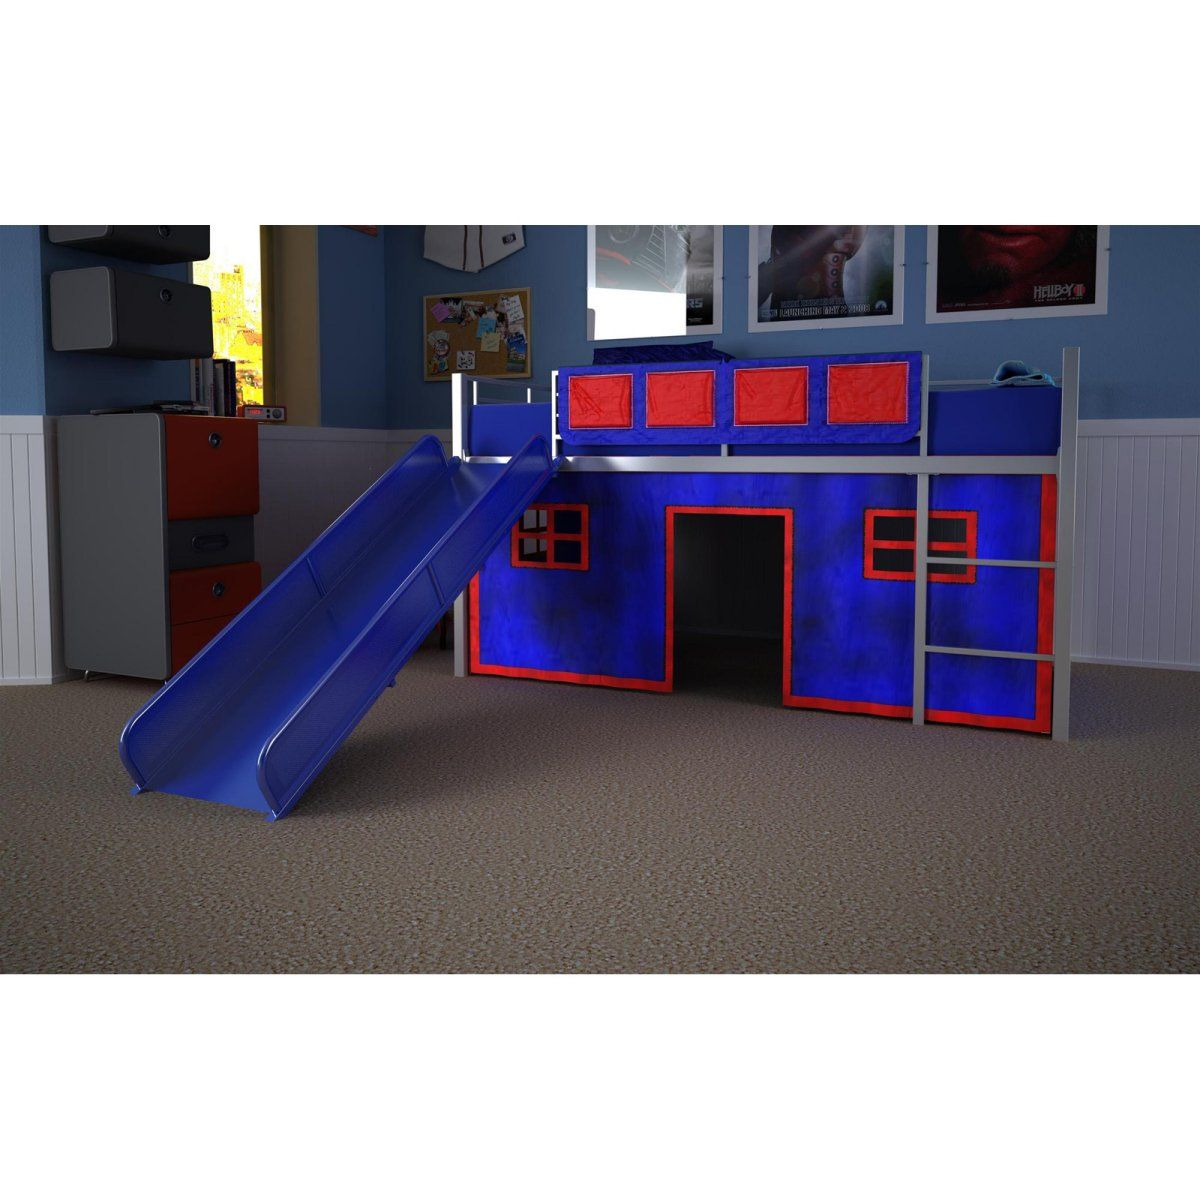 Hunter would have so much fun in this Junior Fantasy Loft with